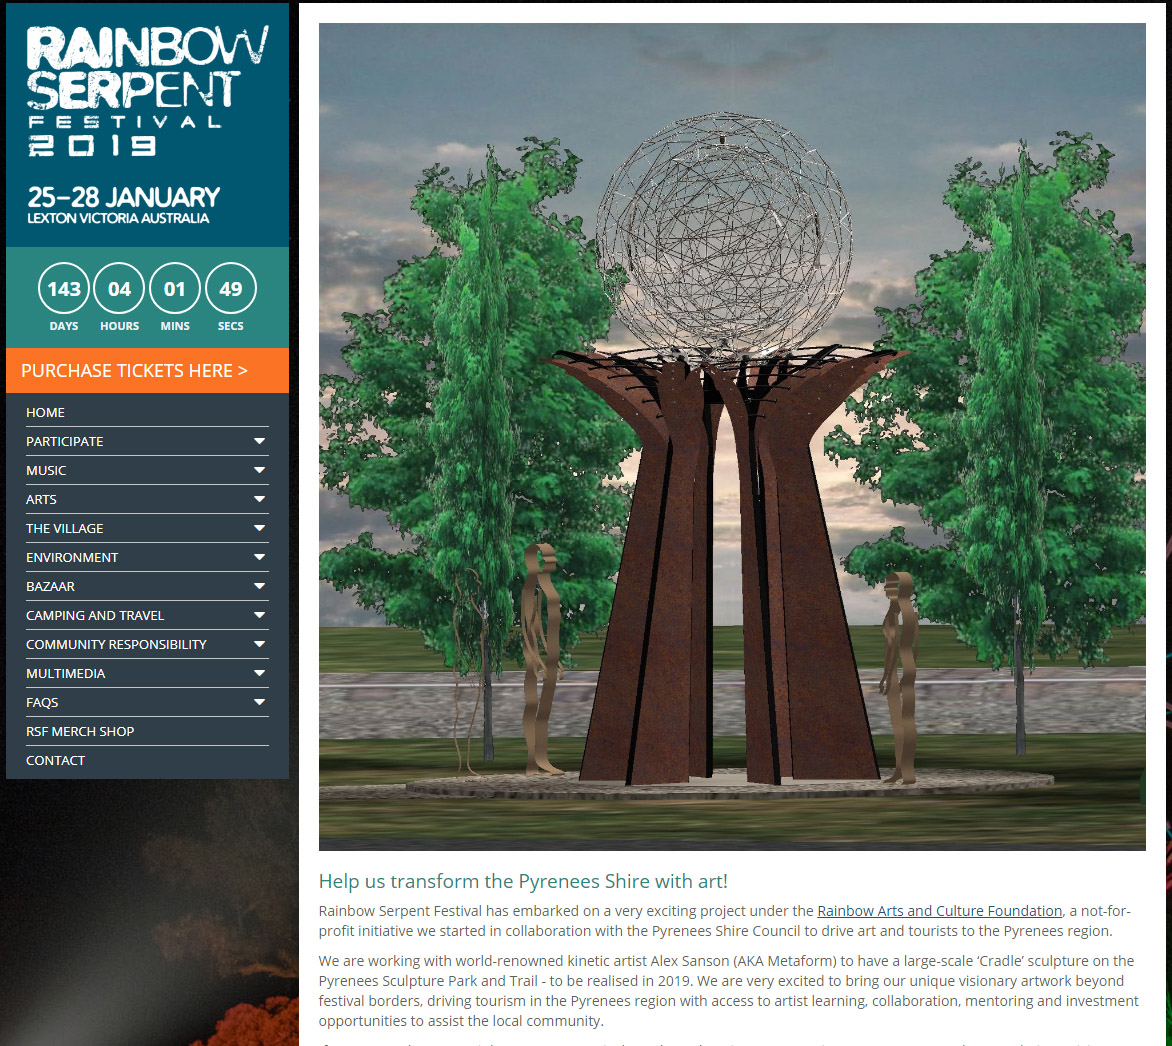 Rainbow Serpent Arts and Culture Foundation